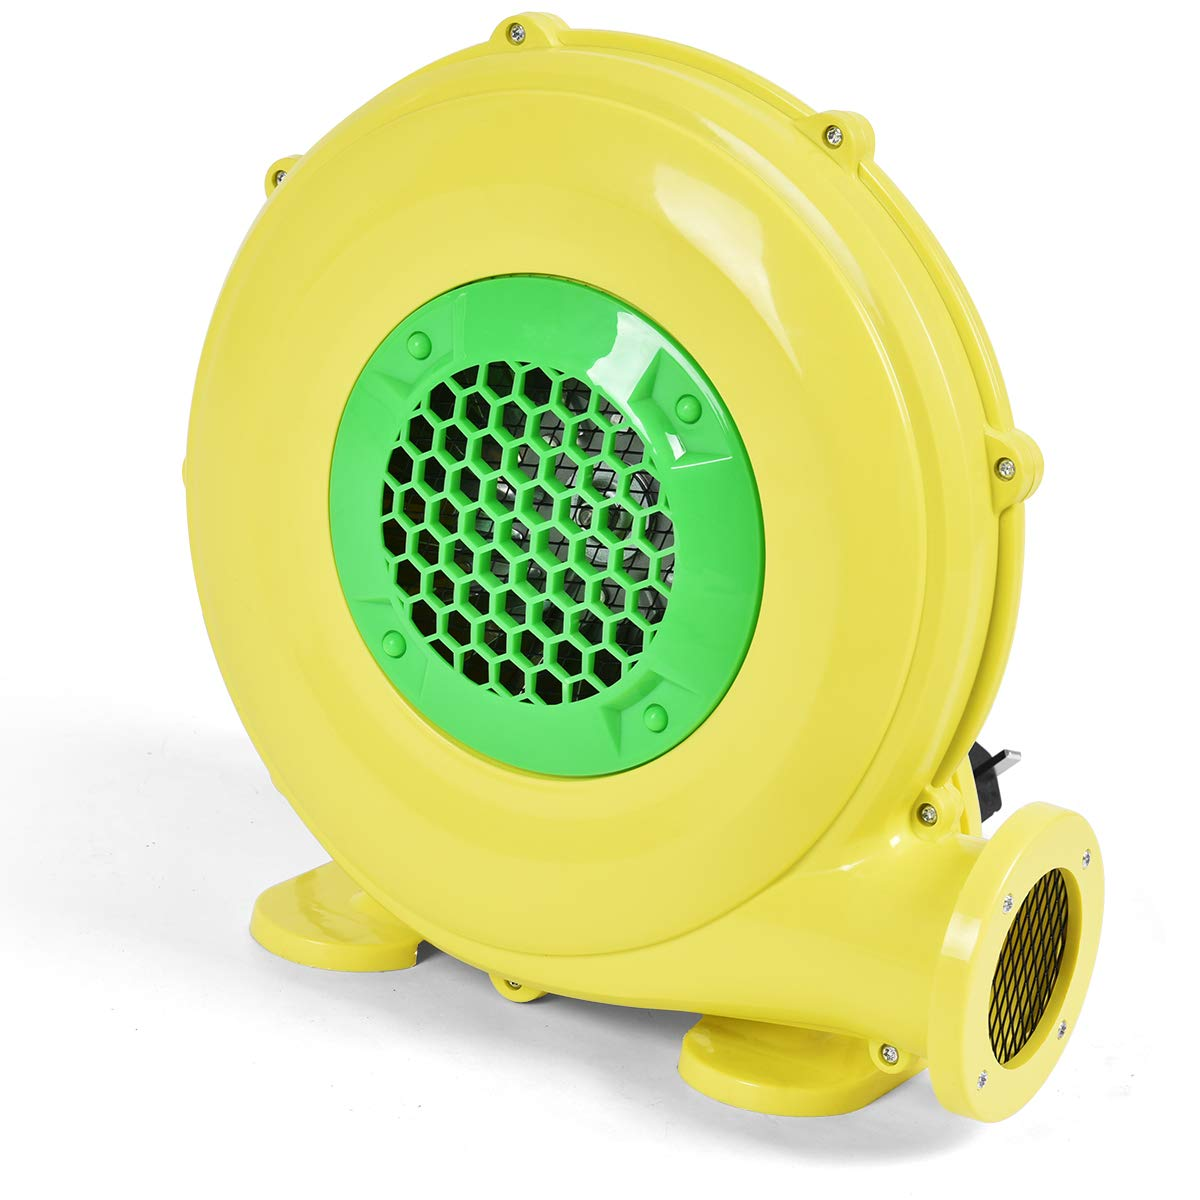 Costzon Air Blower